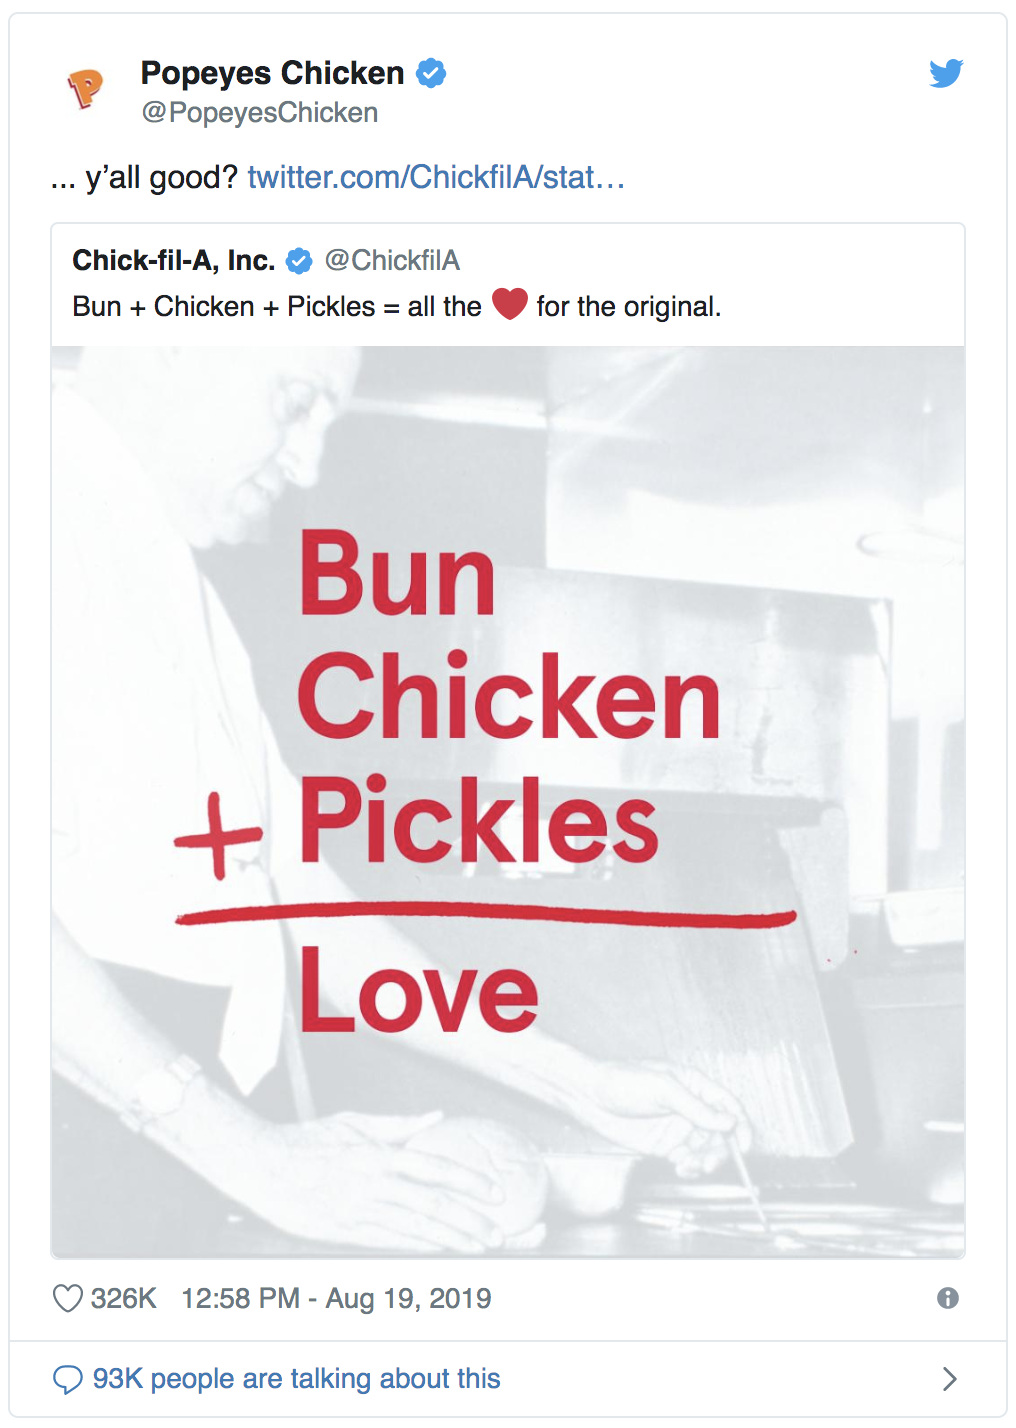 The Popeyes and Chick-fil-A tweets that started the Twitter chicken war